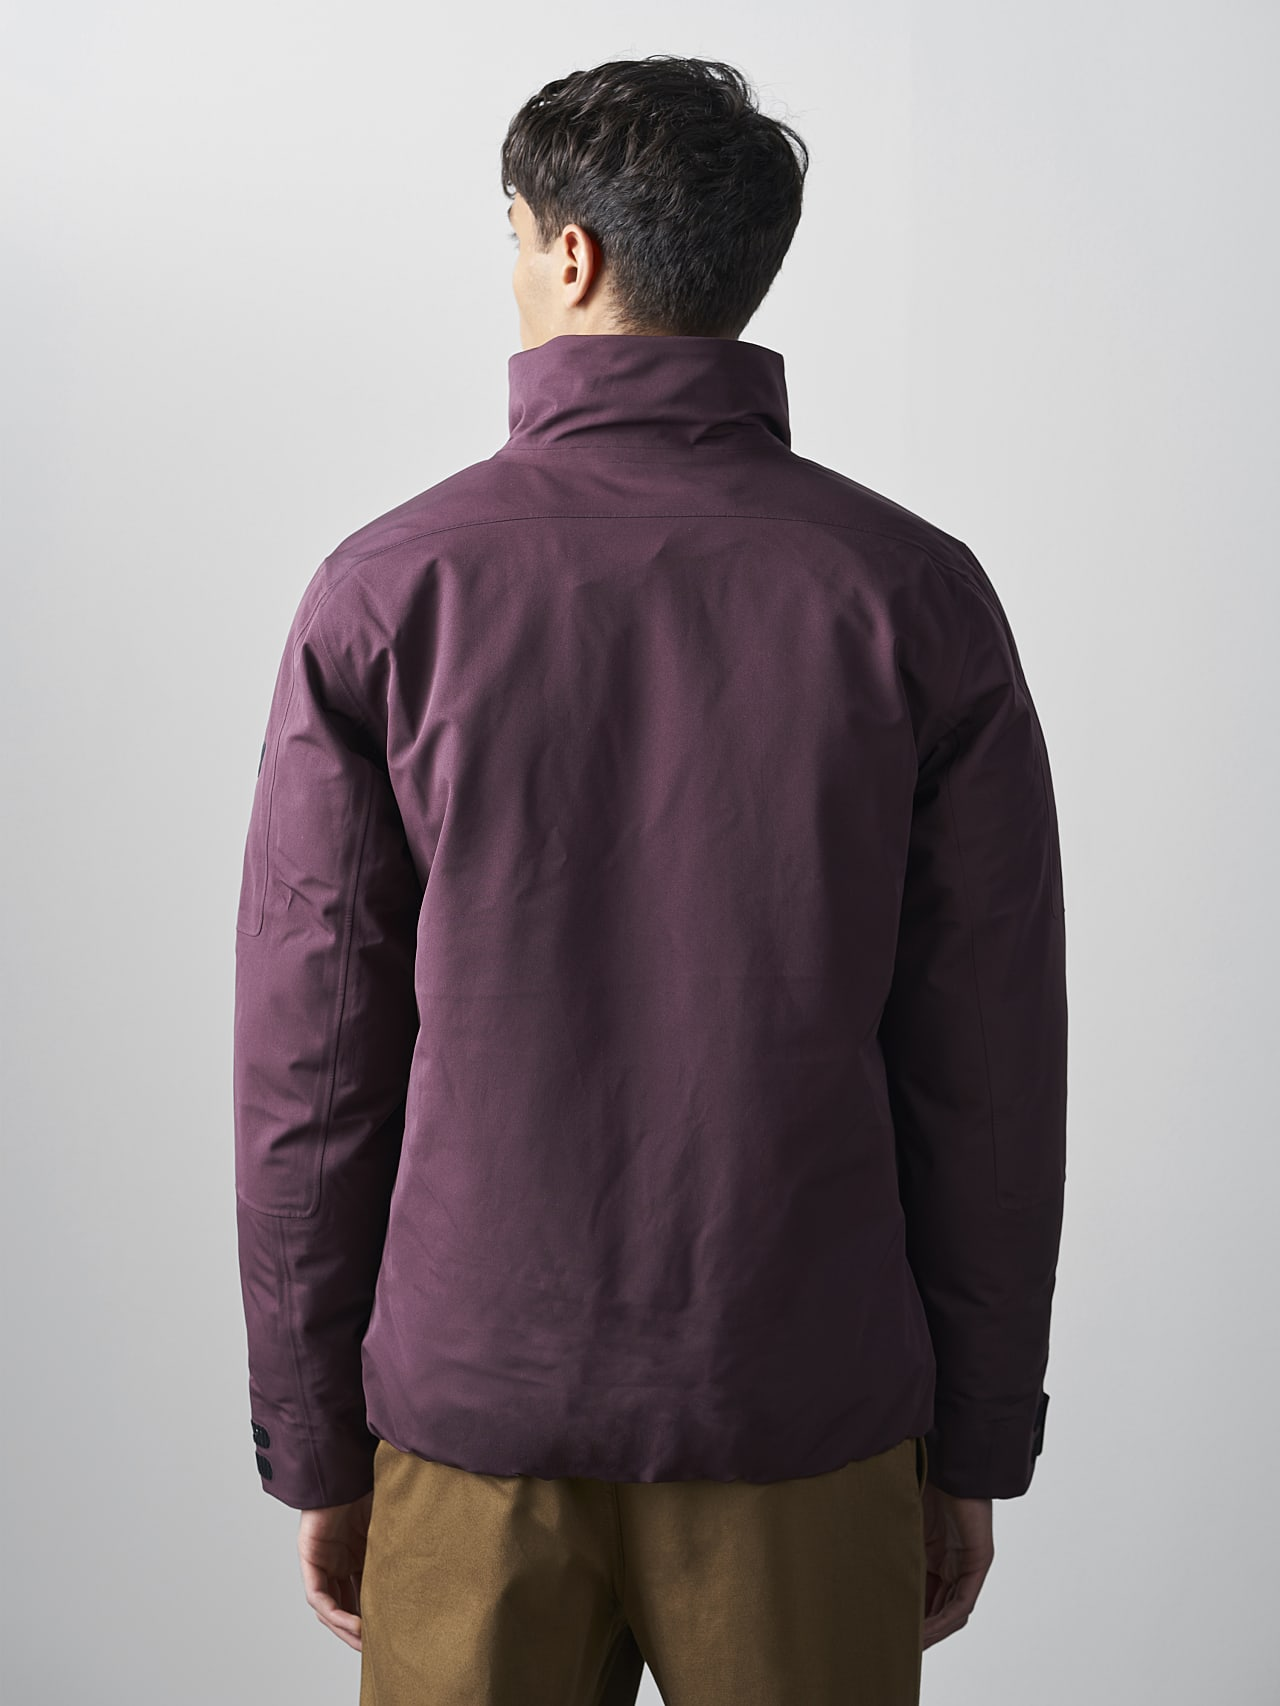 OKOVO V4.Y5.02 Packable and Waterproof Winter Jacket Burgundy Front Main Alpha Tauri